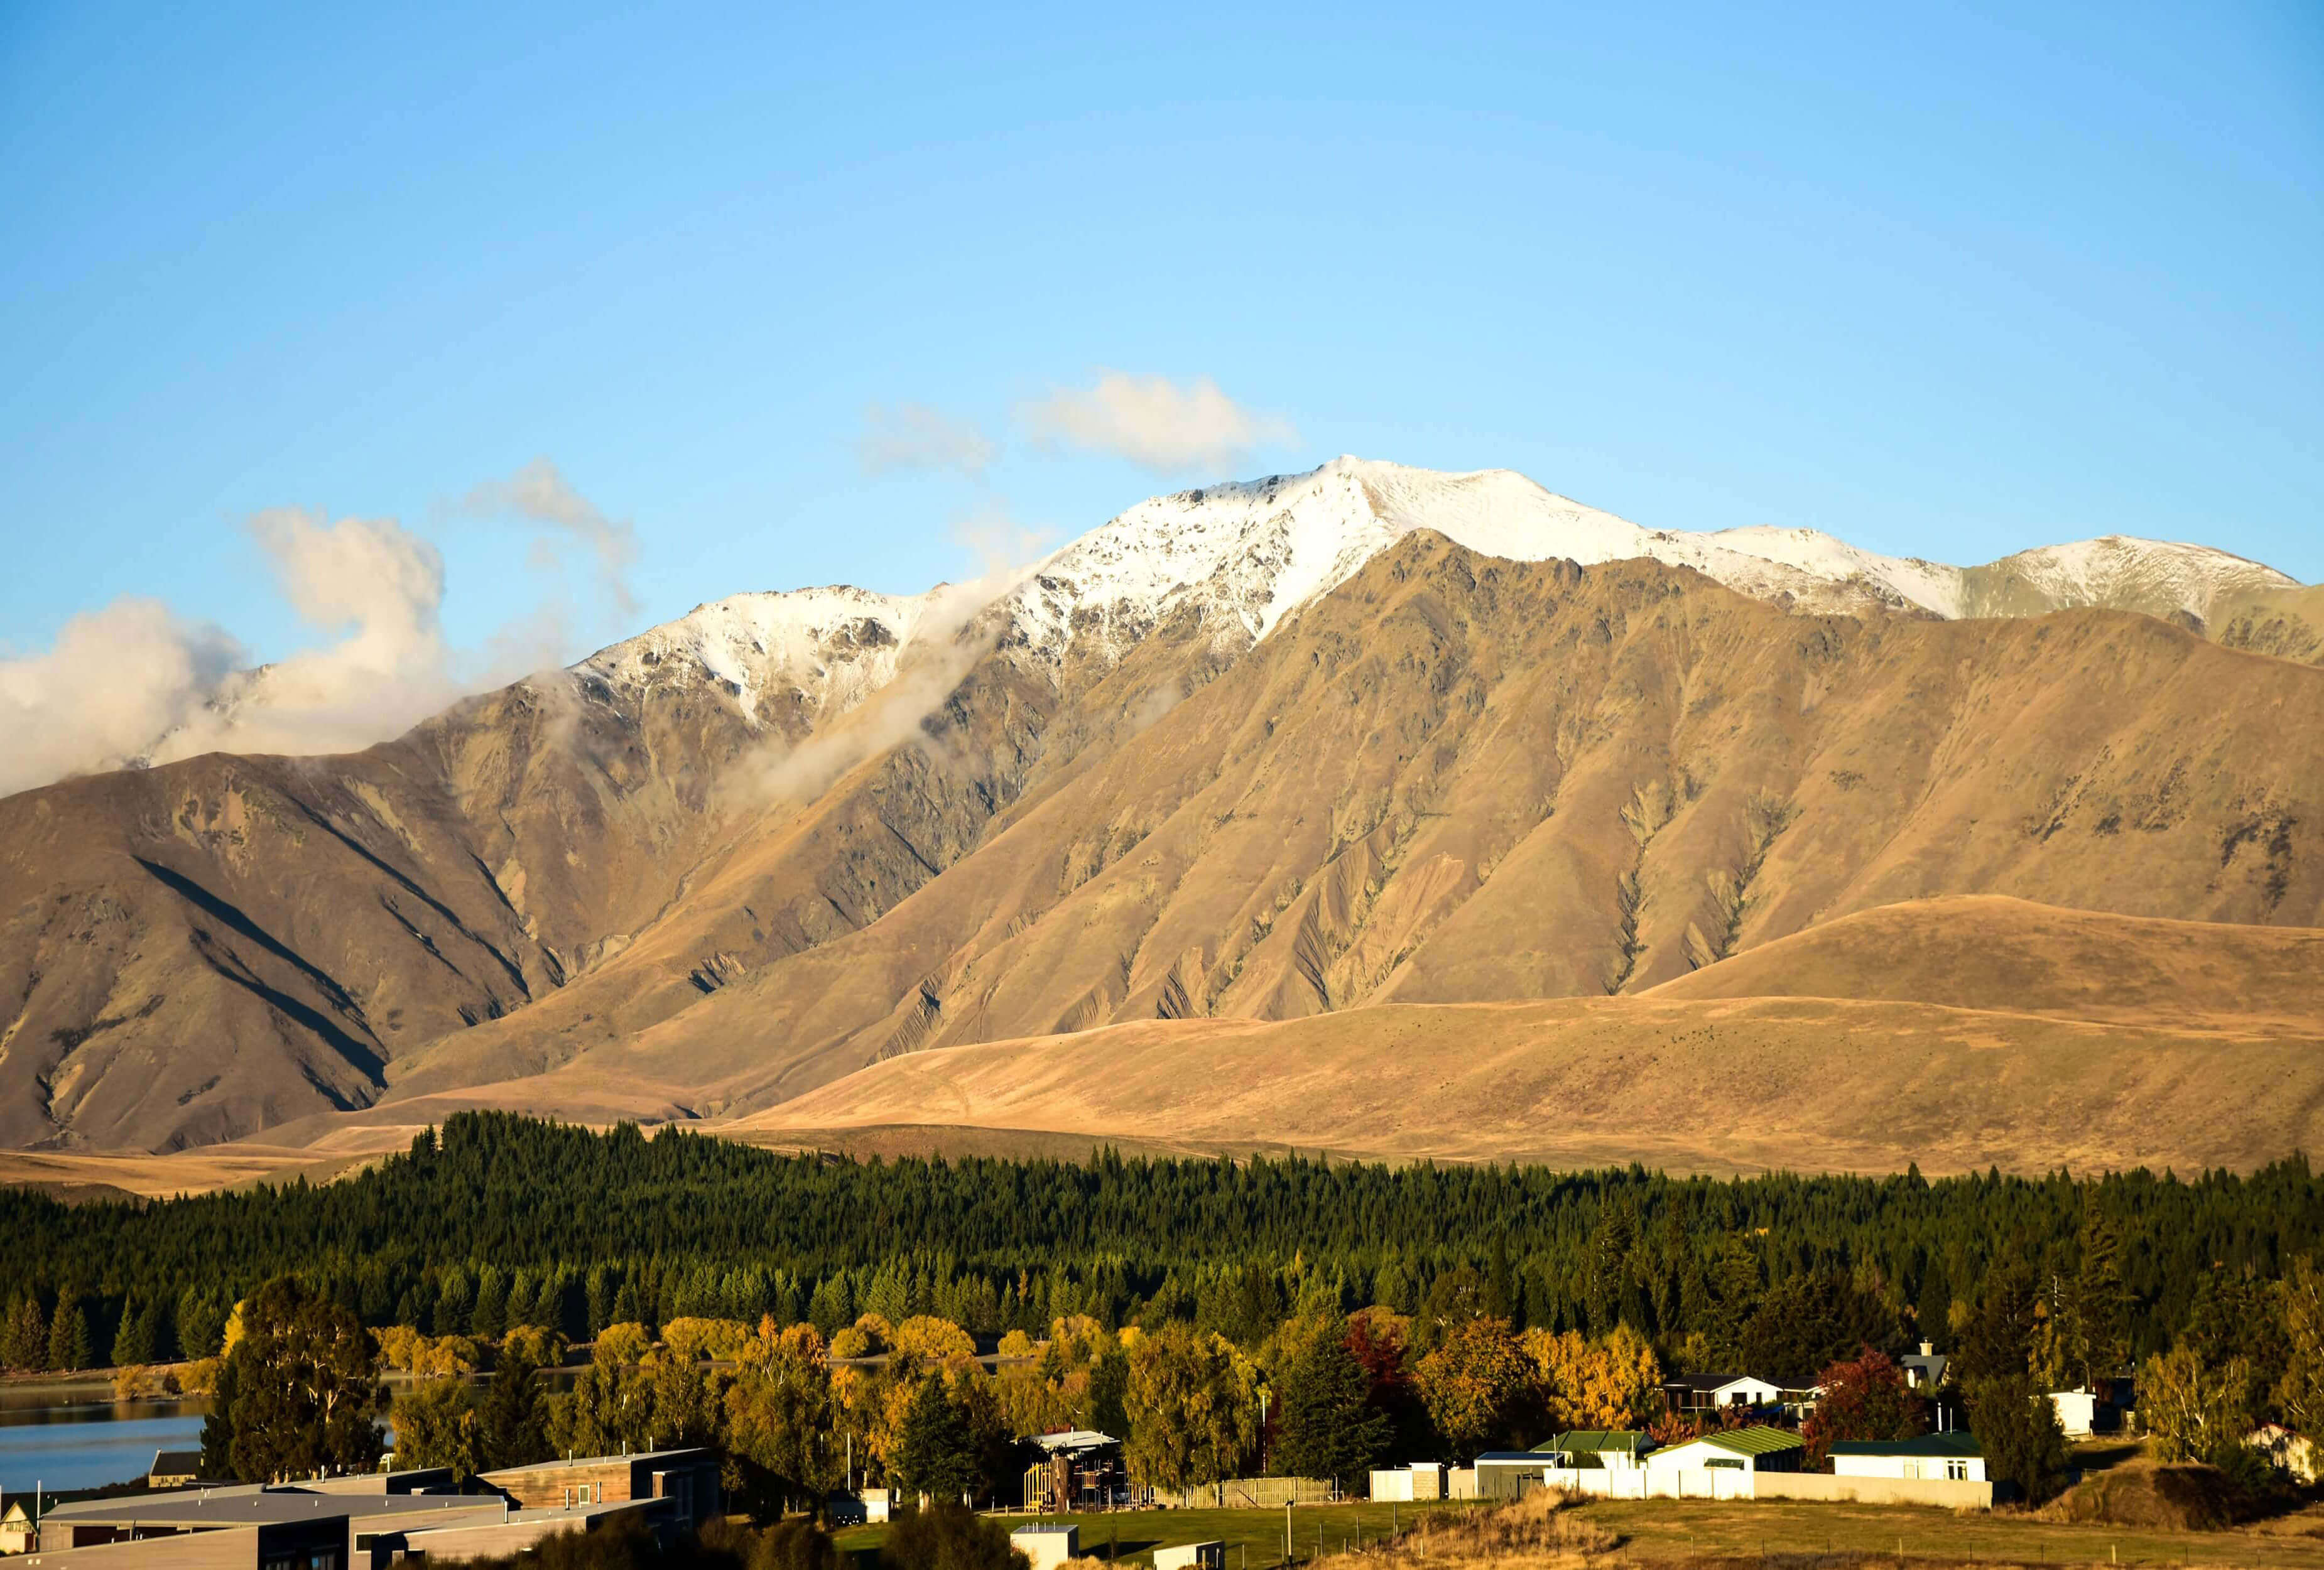 Image of the Two Thumb Mountain Range in Lake Tekapo with snow capped peaks in autumn